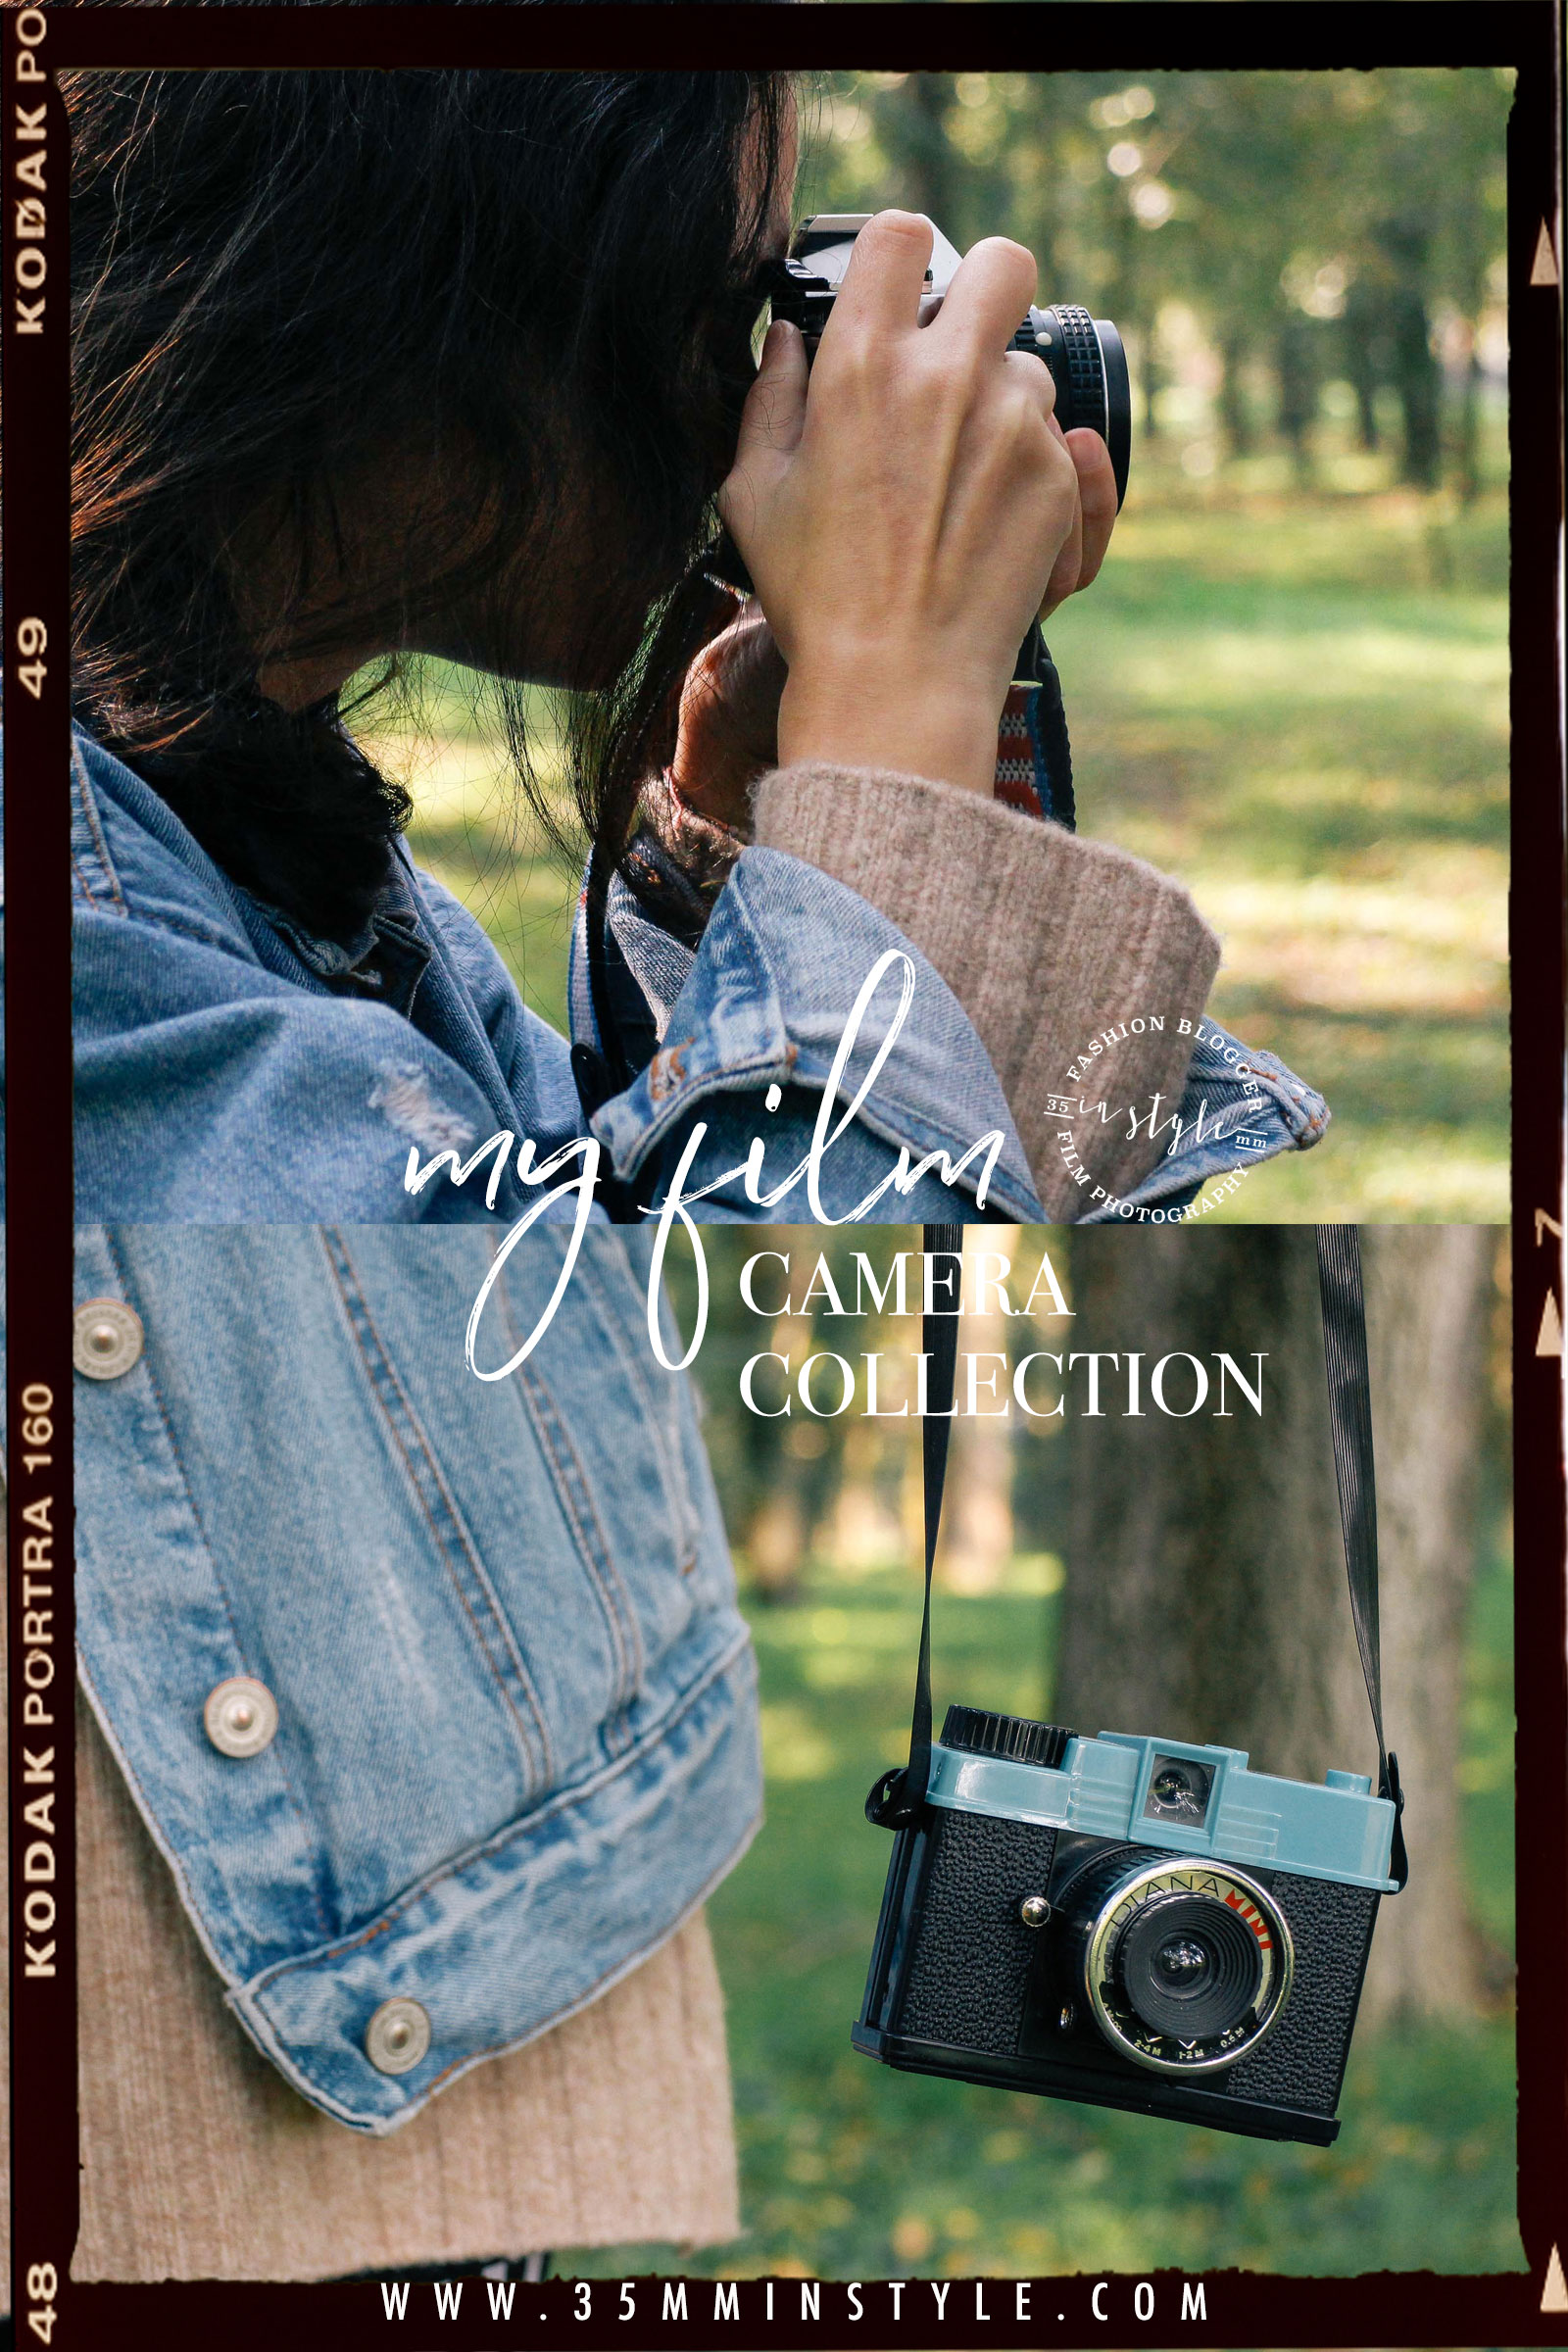 My film camera collection 35mminstyle